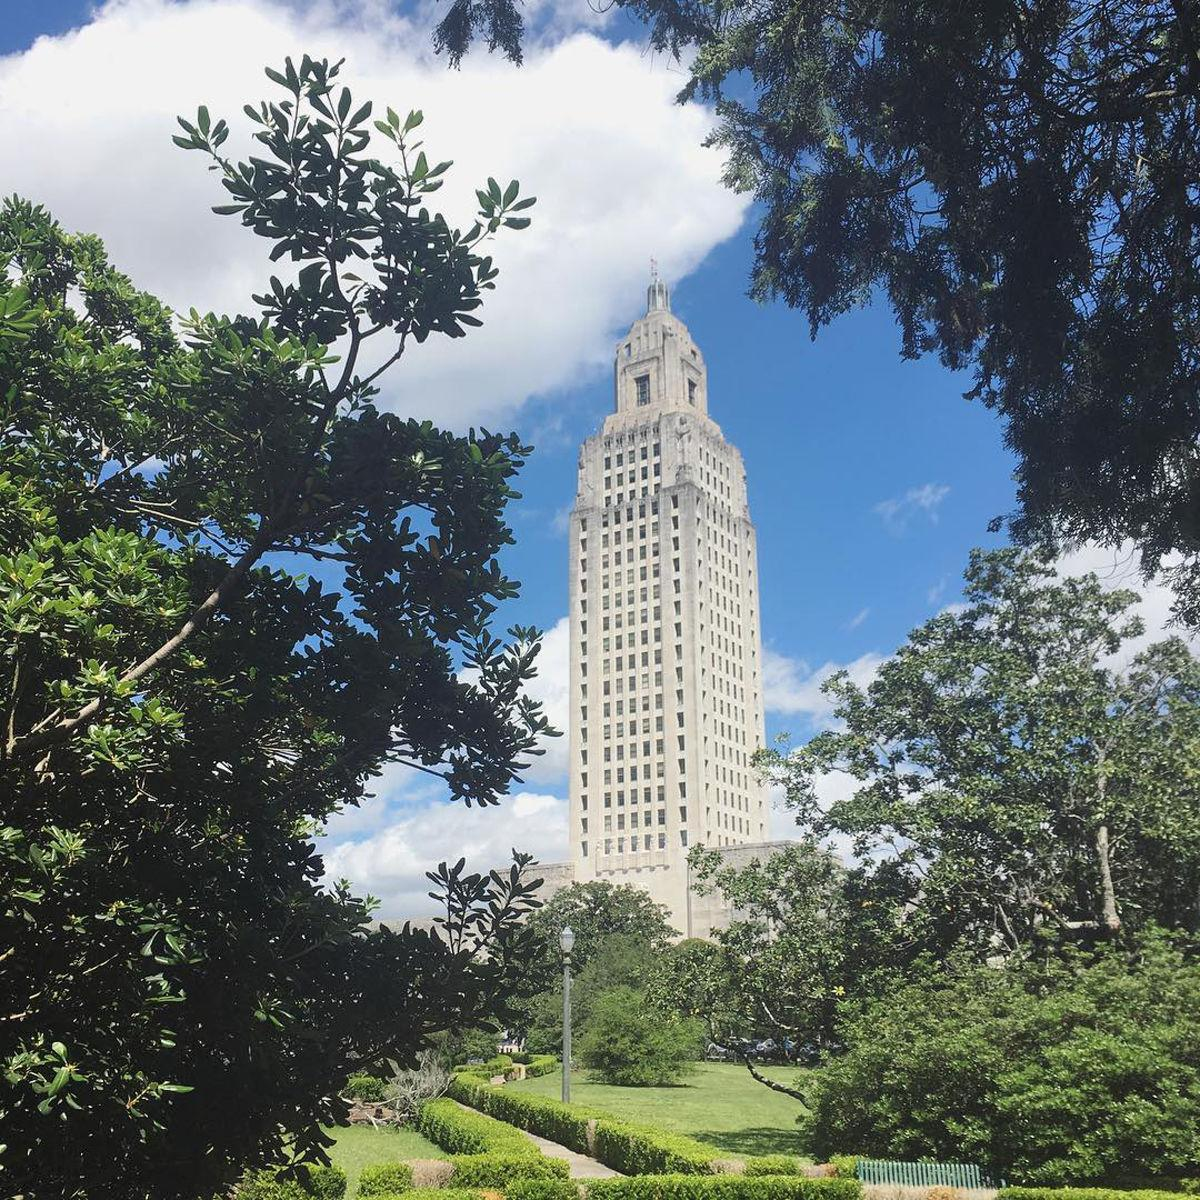 5 Things to Know About the 2019 Louisiana Legislative Session